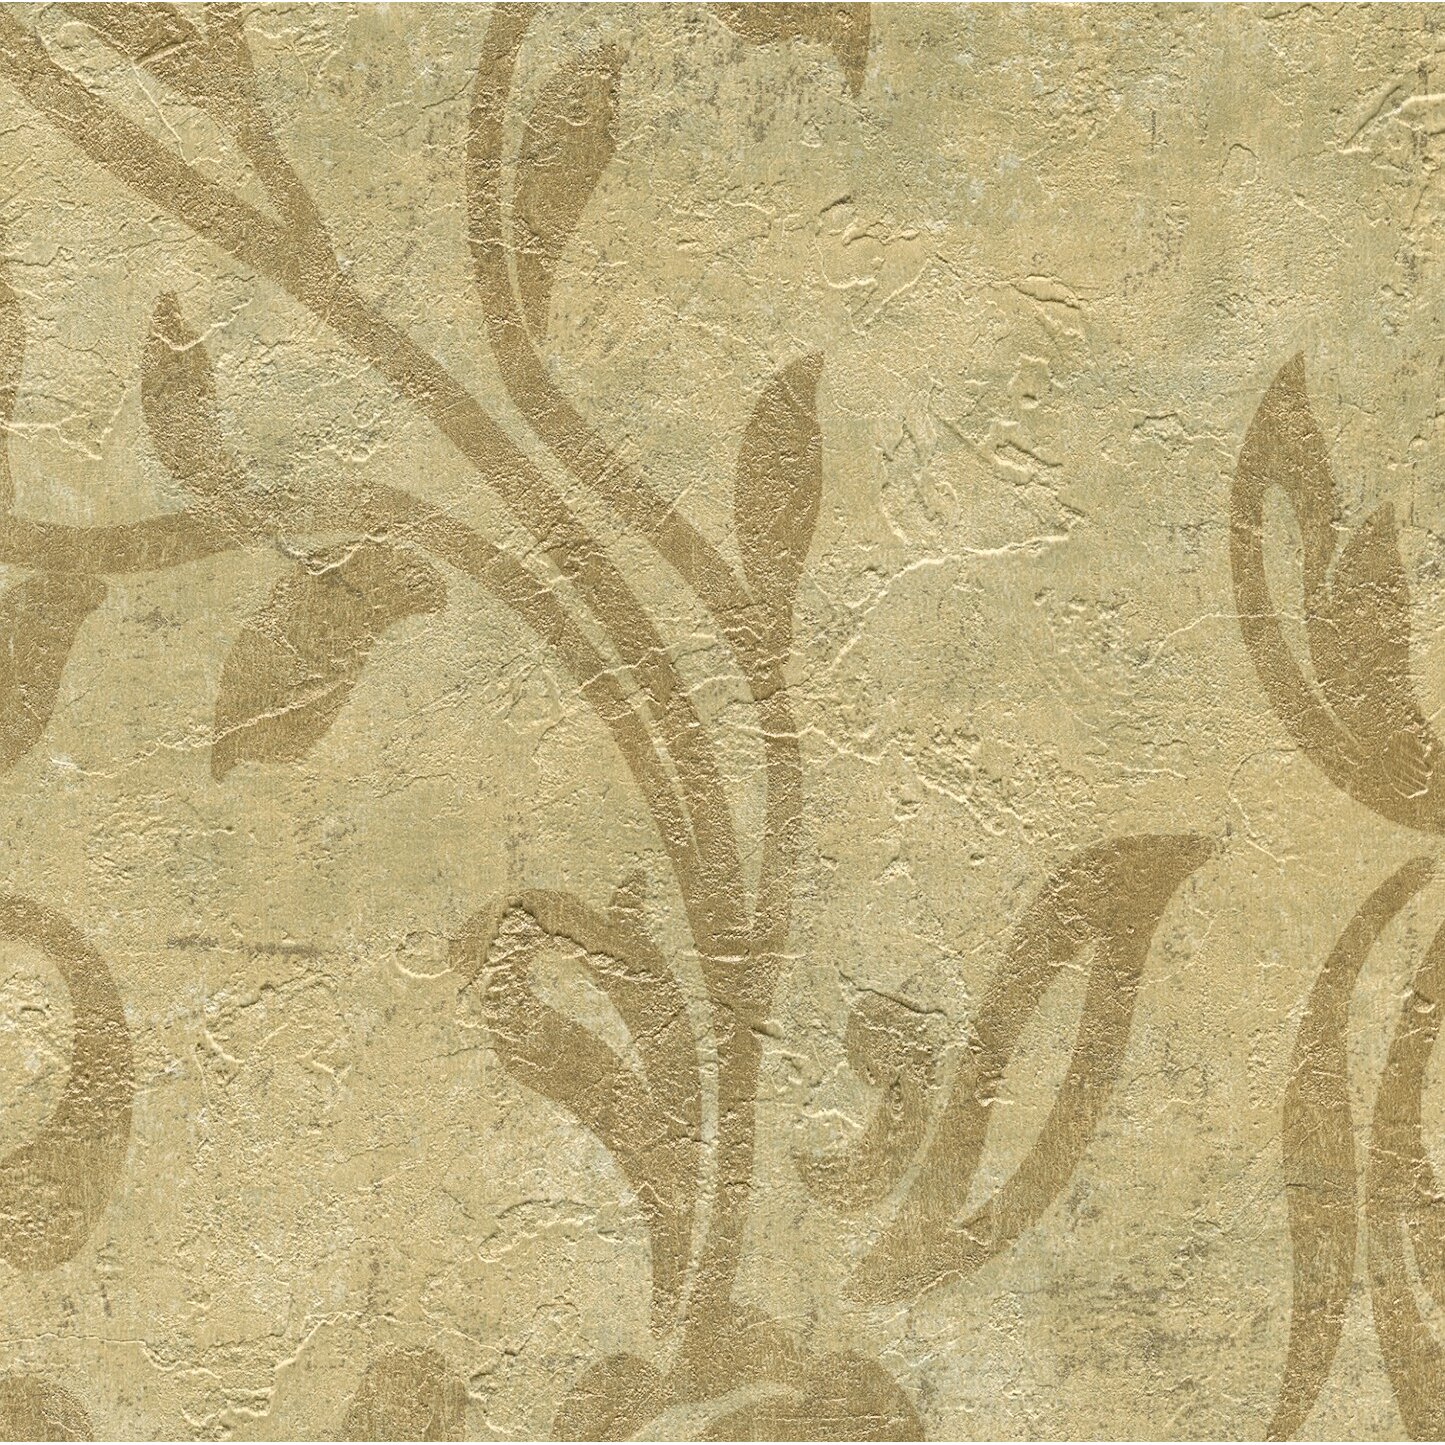 Brewster home fashions warner textures iv scrubbable and for 3d embossed wallpaper